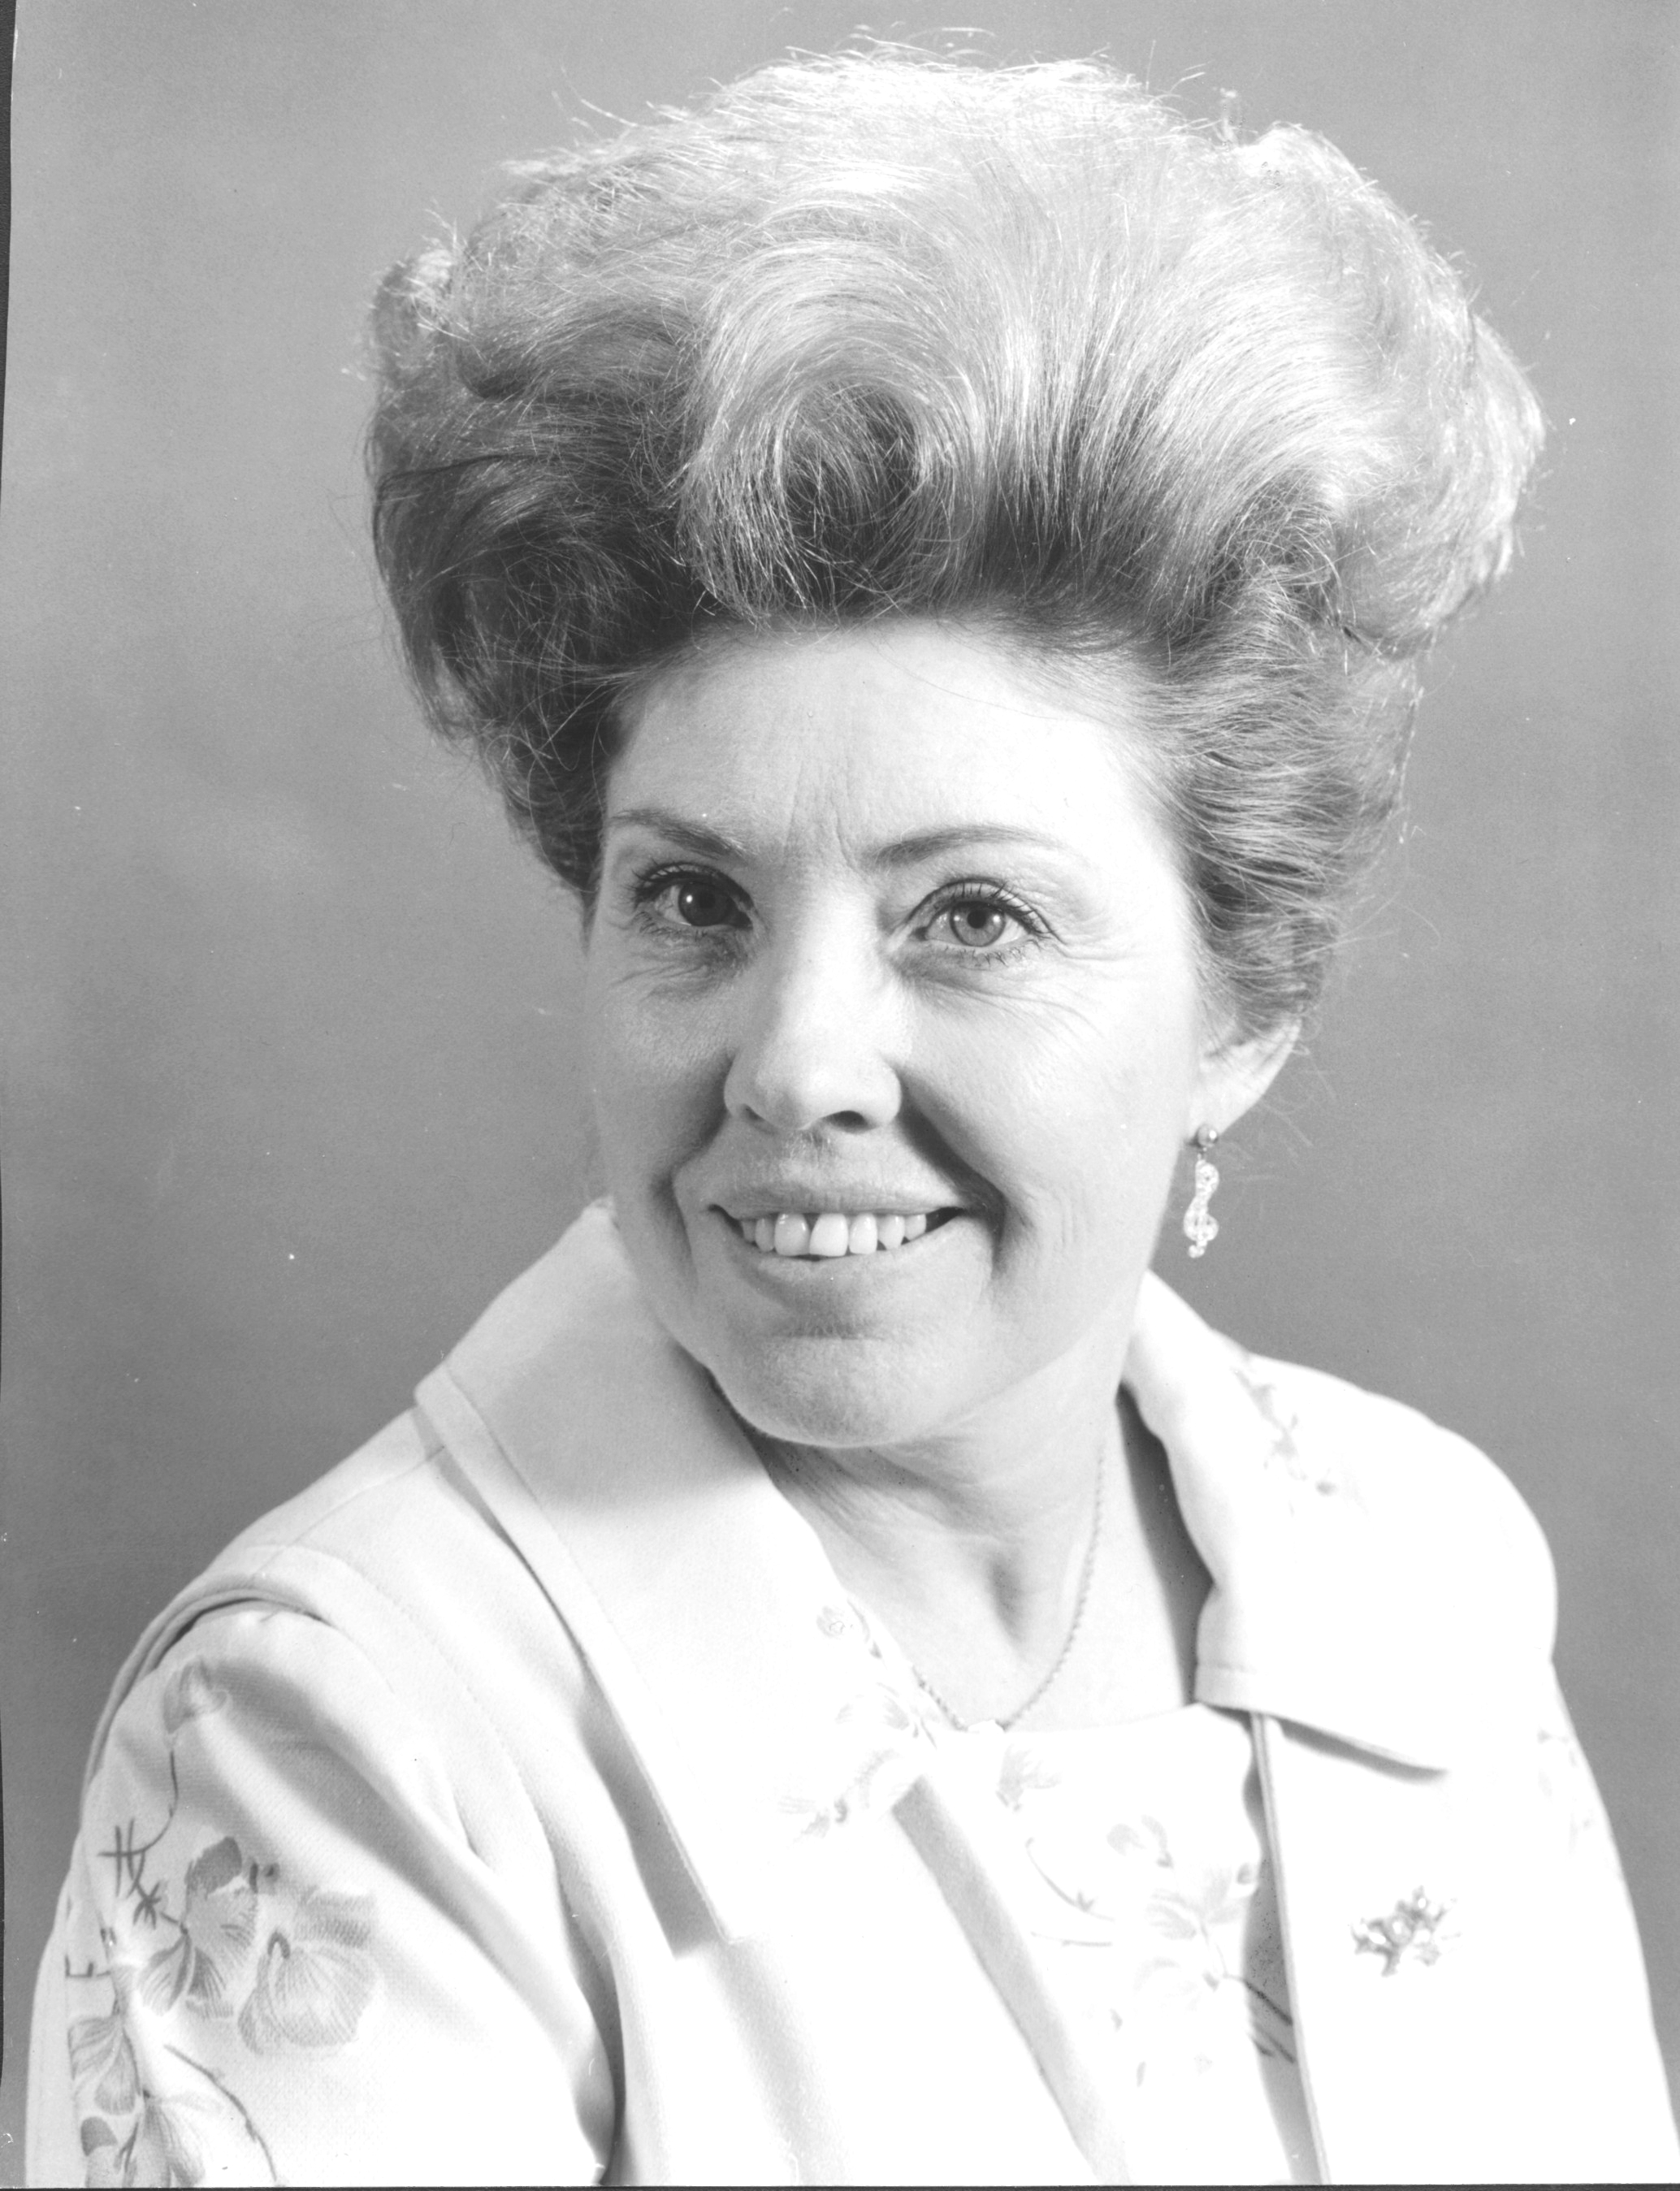 When Beehive Hairdos Ruled...